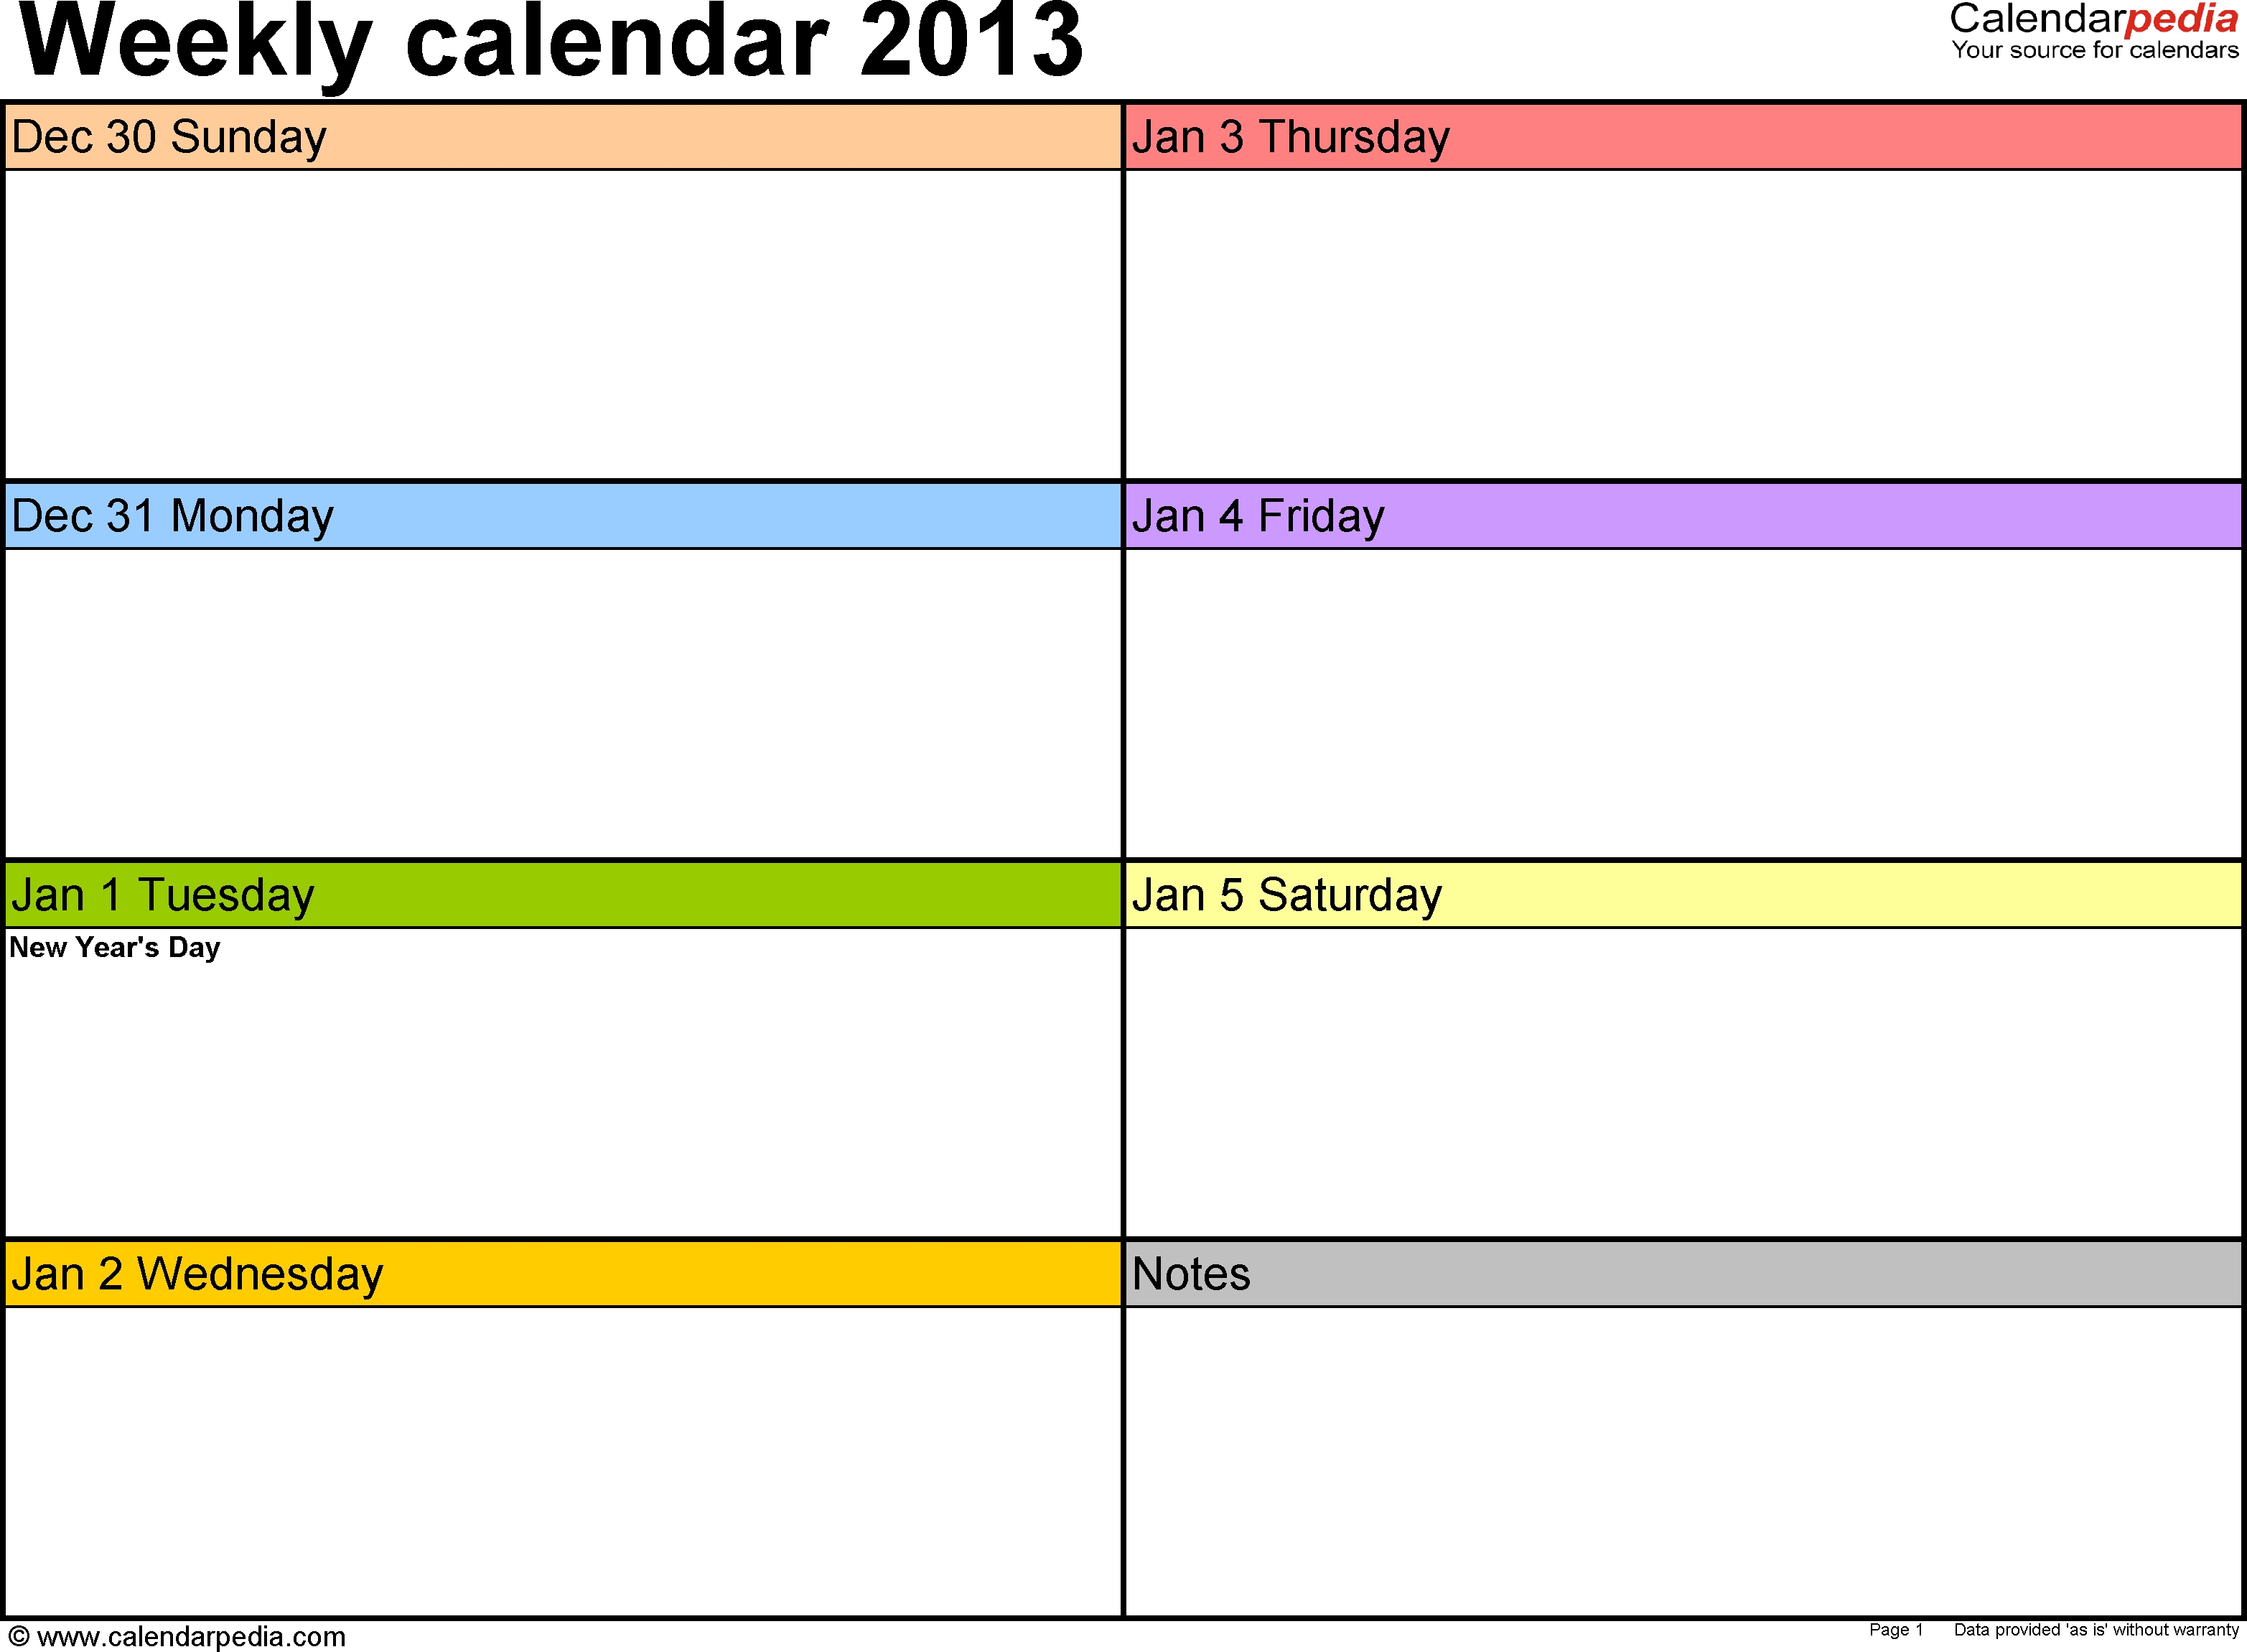 Weekly Calendar 2013 For Word 4 Free Printable Templates3abry